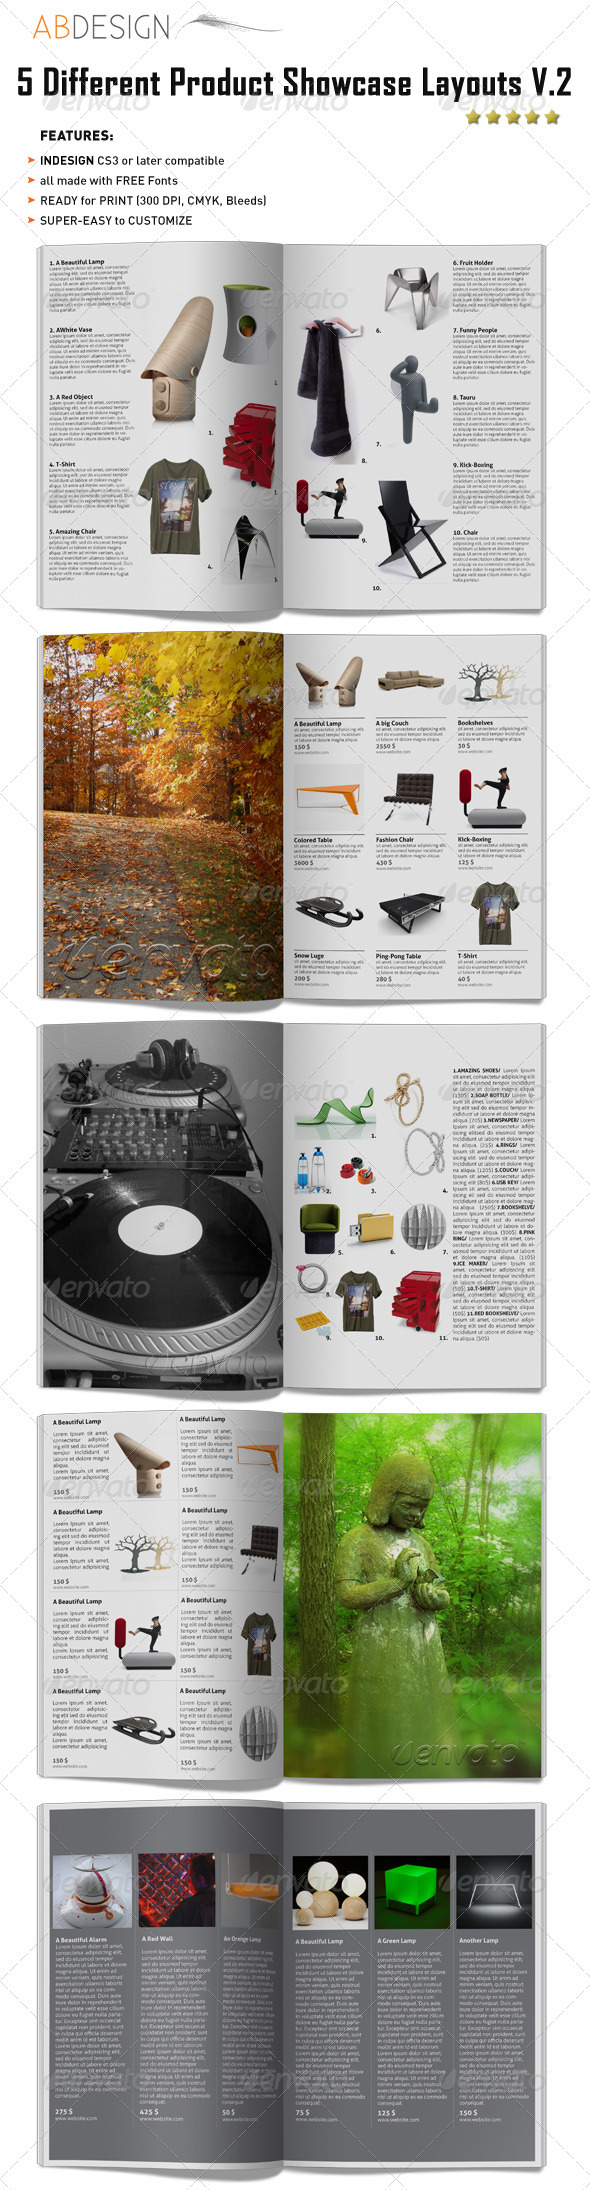 GraphicRiver 5 Different Products Showcase Layouts V.2 232618